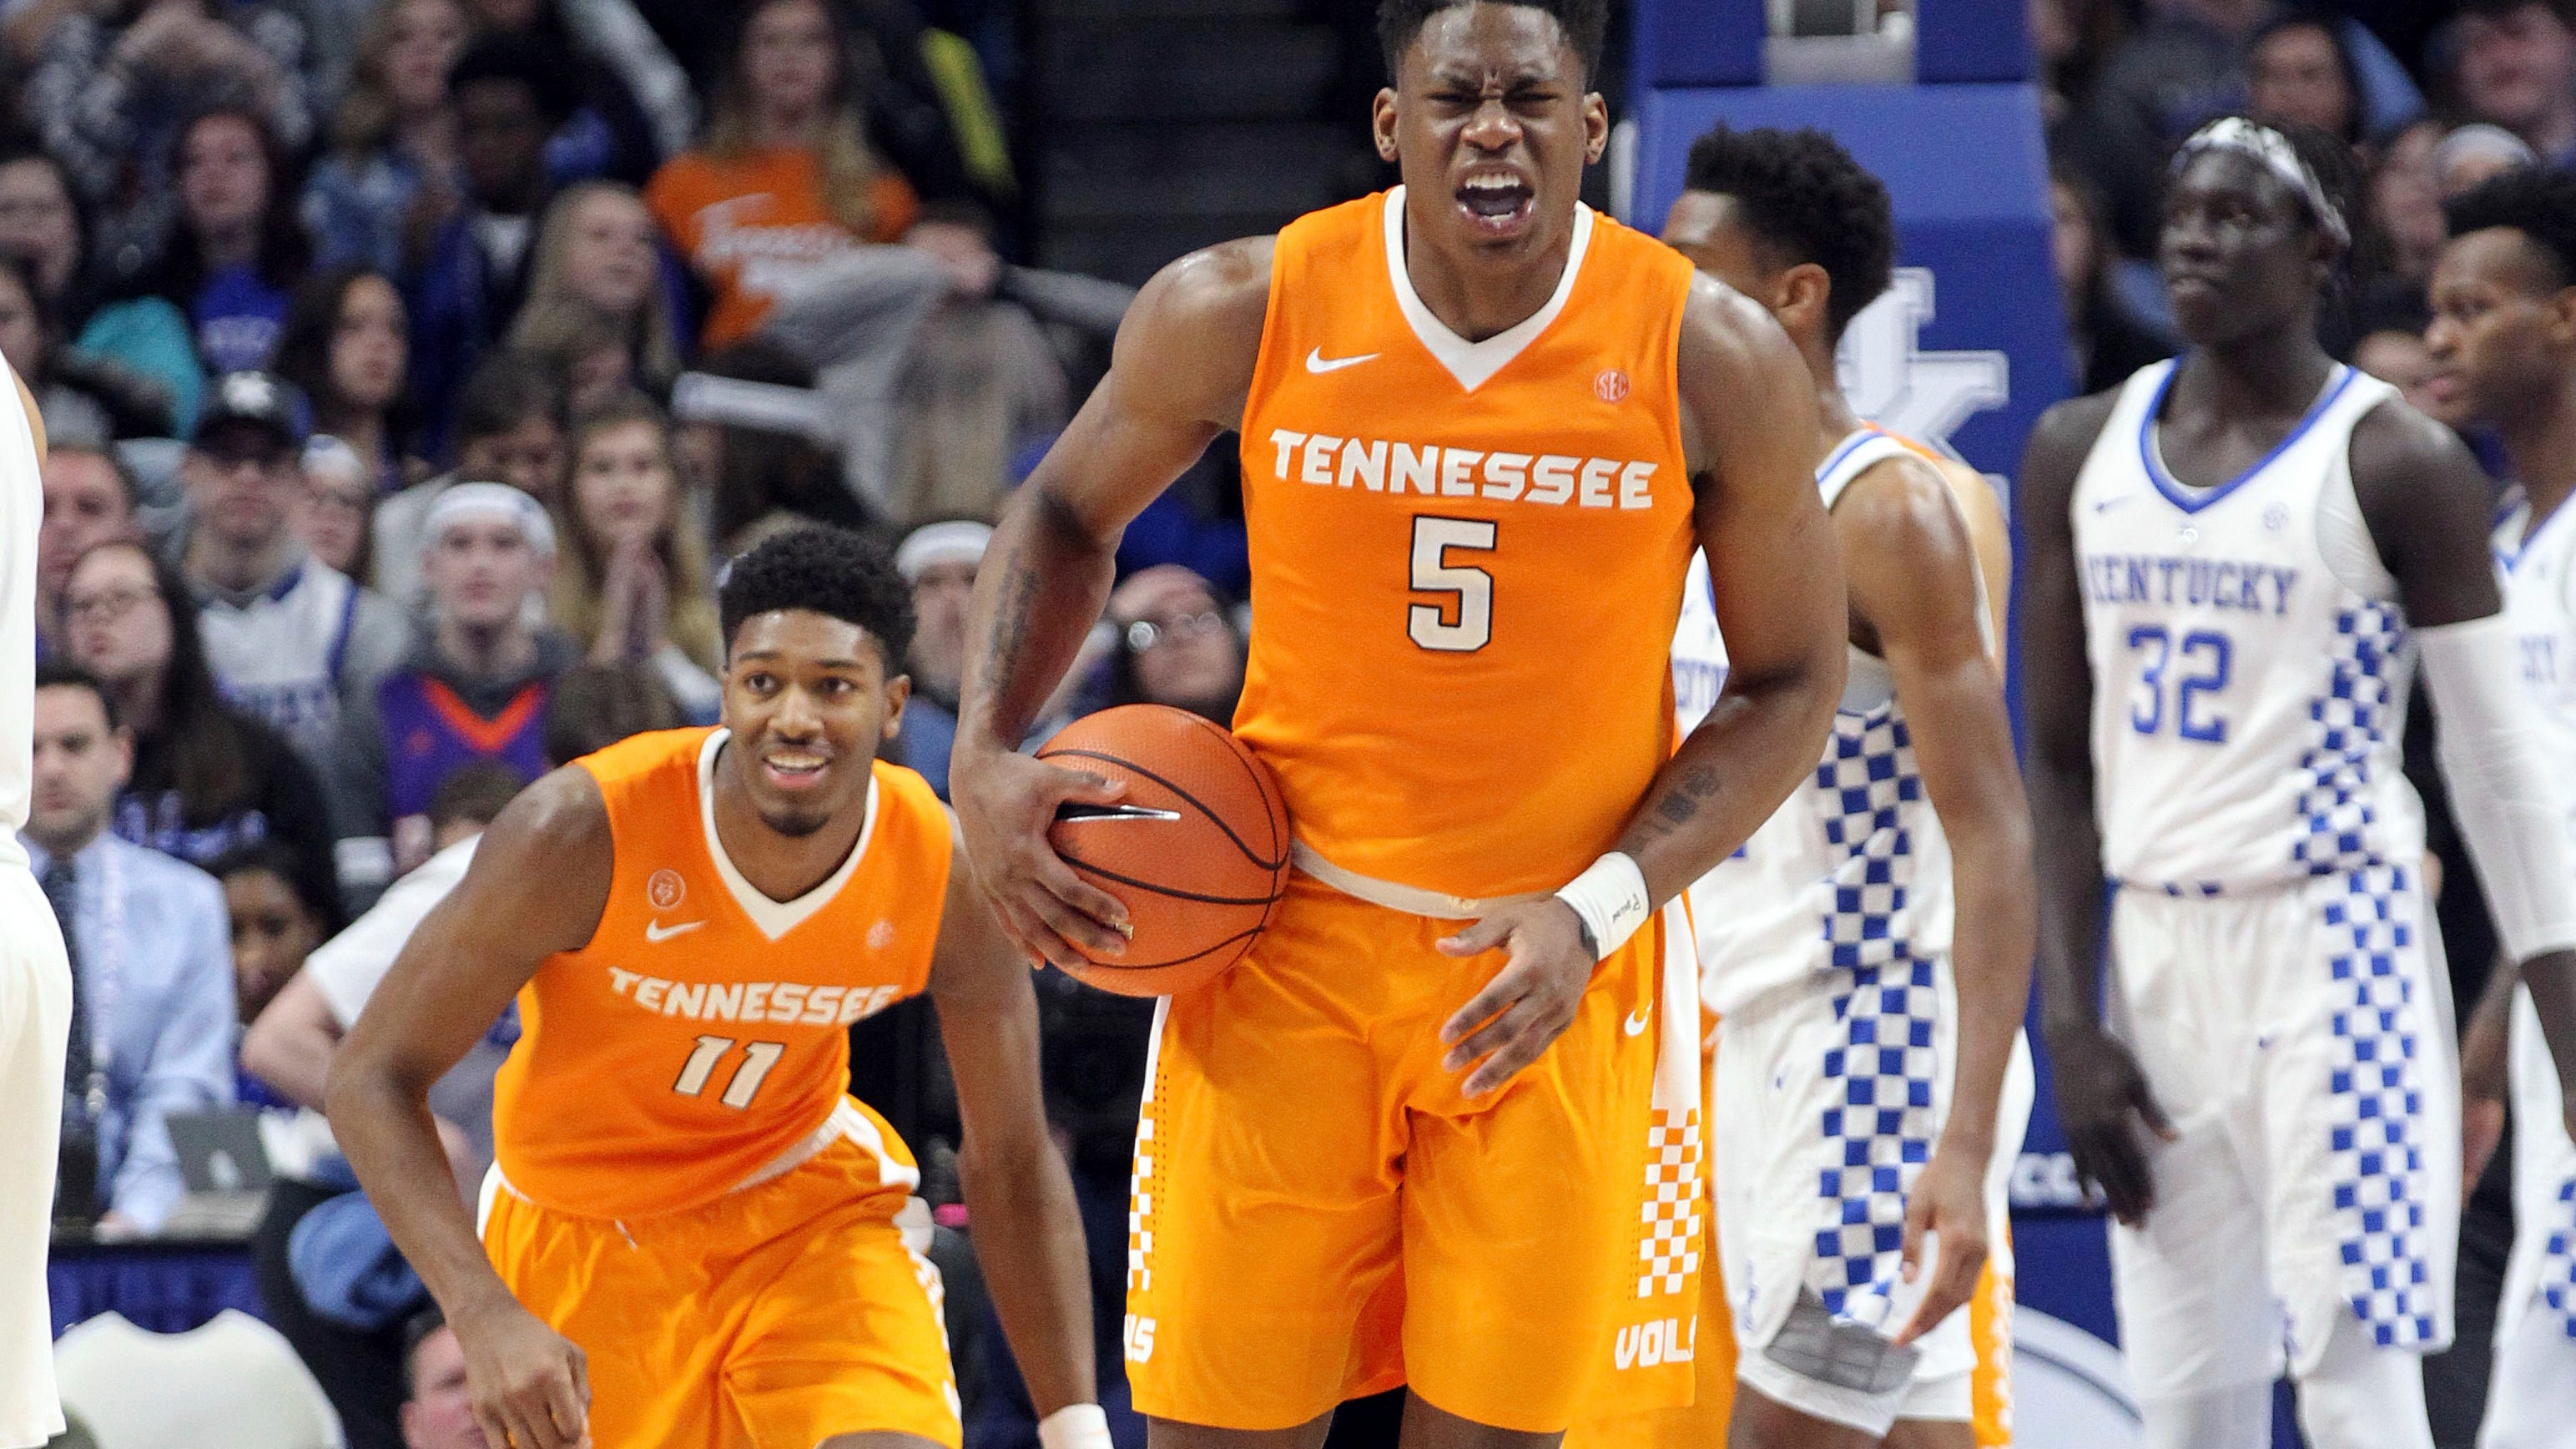 Uk Basketball Uk Vs Tenn: UT Vols Basketball Vs. Kentucky 'not Just Another One' For